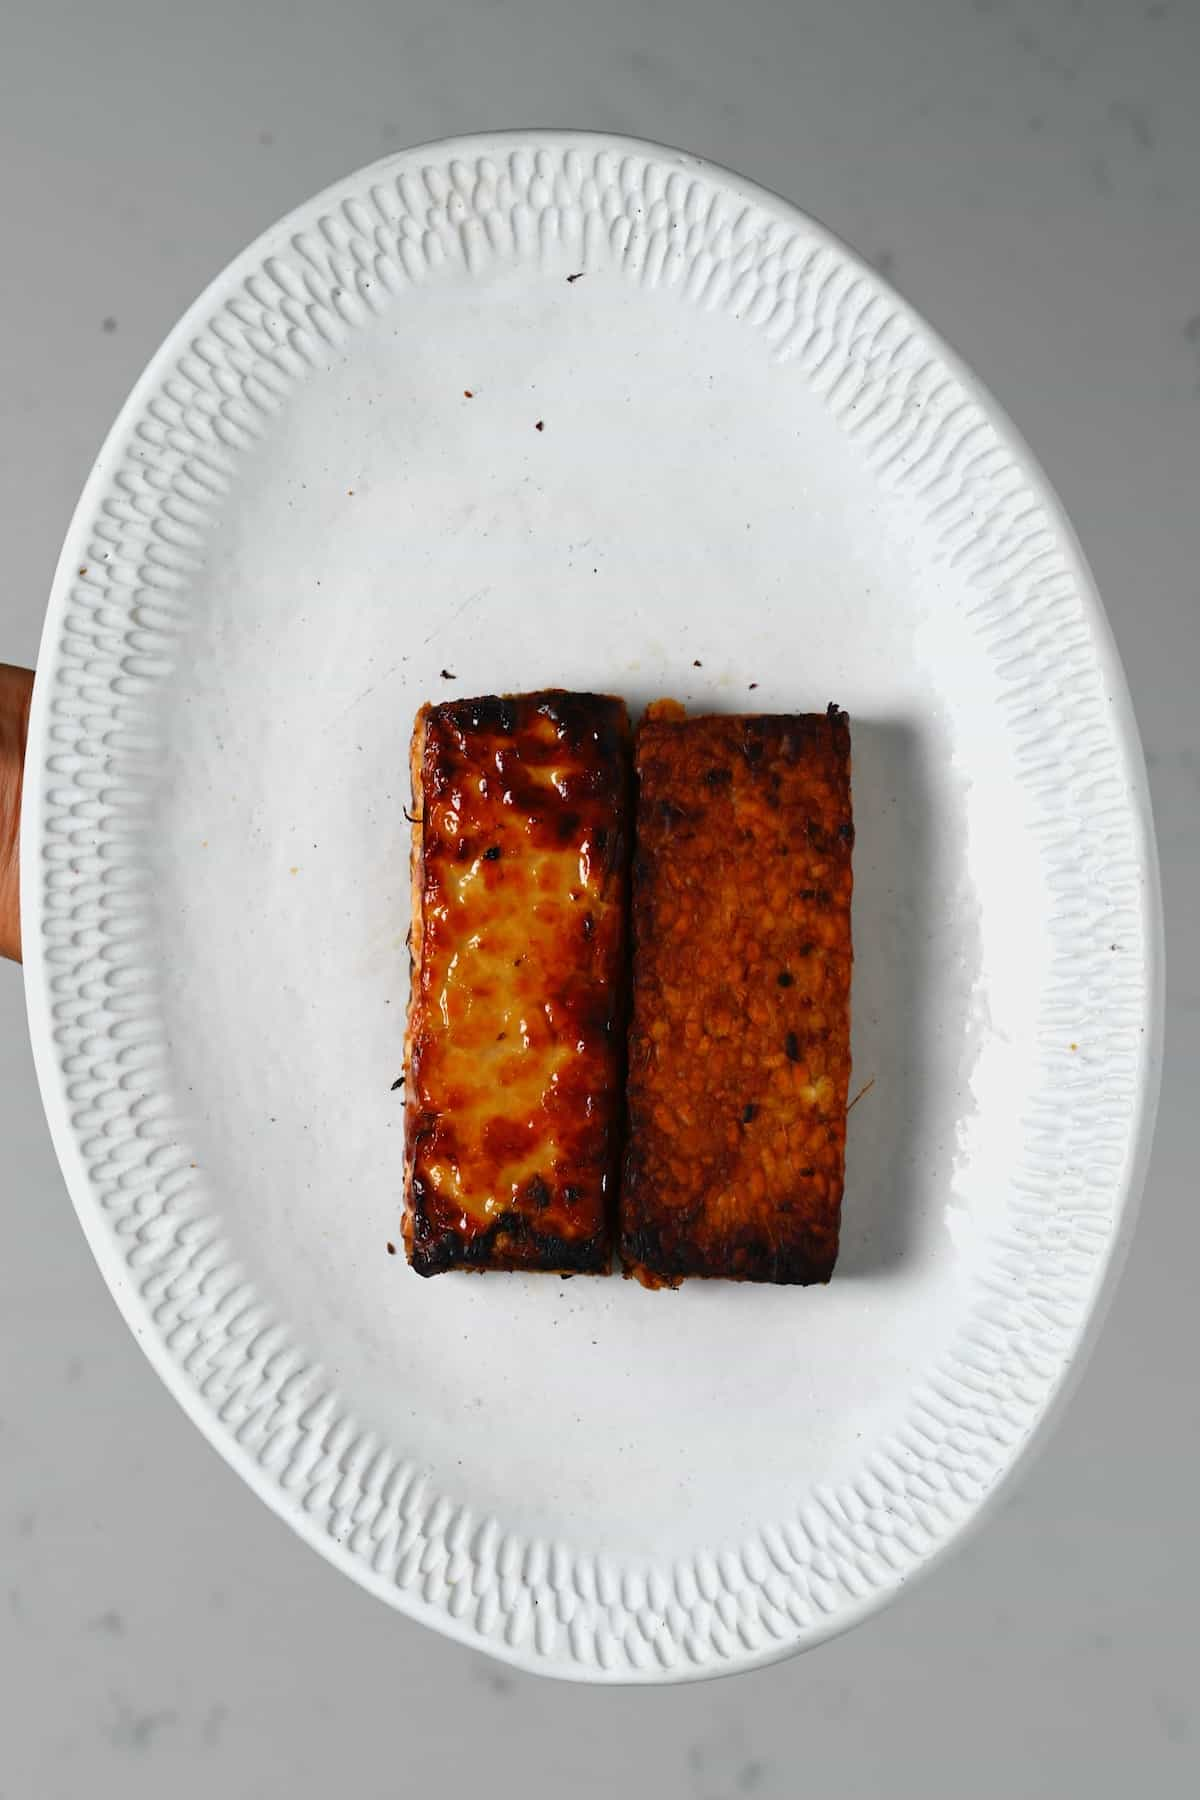 A plate with pan-fried tempeh